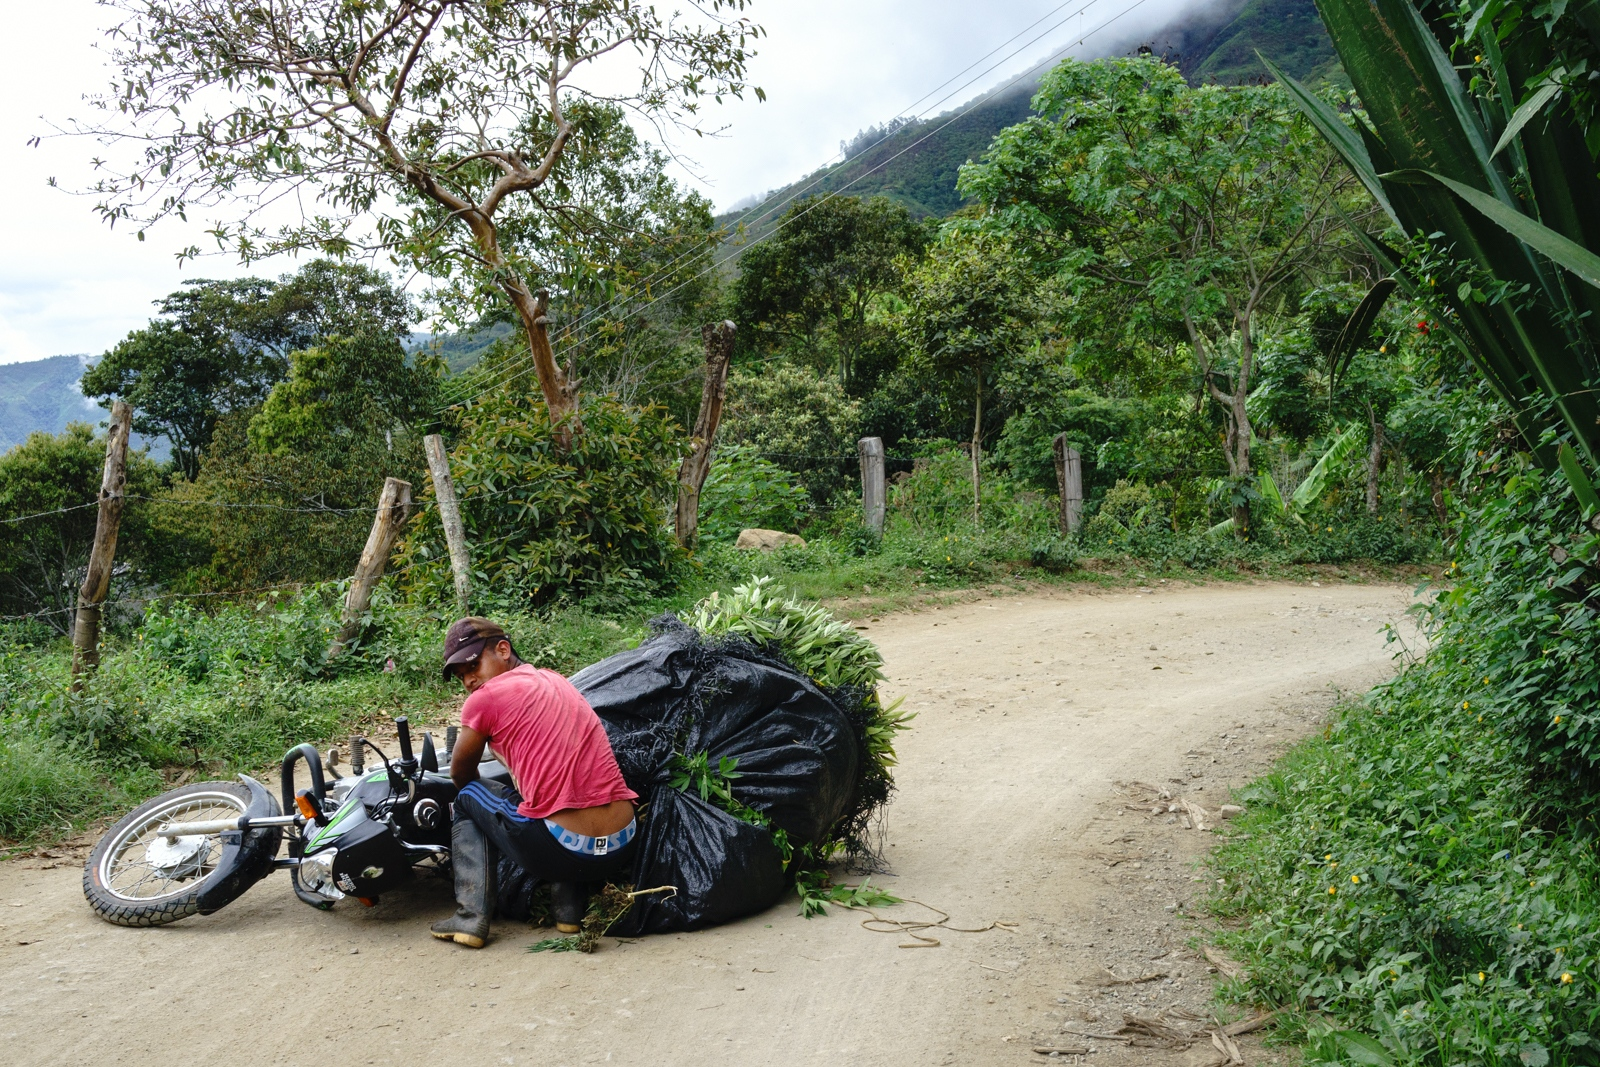 a young man lost the control of his motorcycle on a curve while carrying marijuana from a field to an oven at a neighbours house, Motorcycles and horses are the main transportation method for marijuana within the town of Toribio.